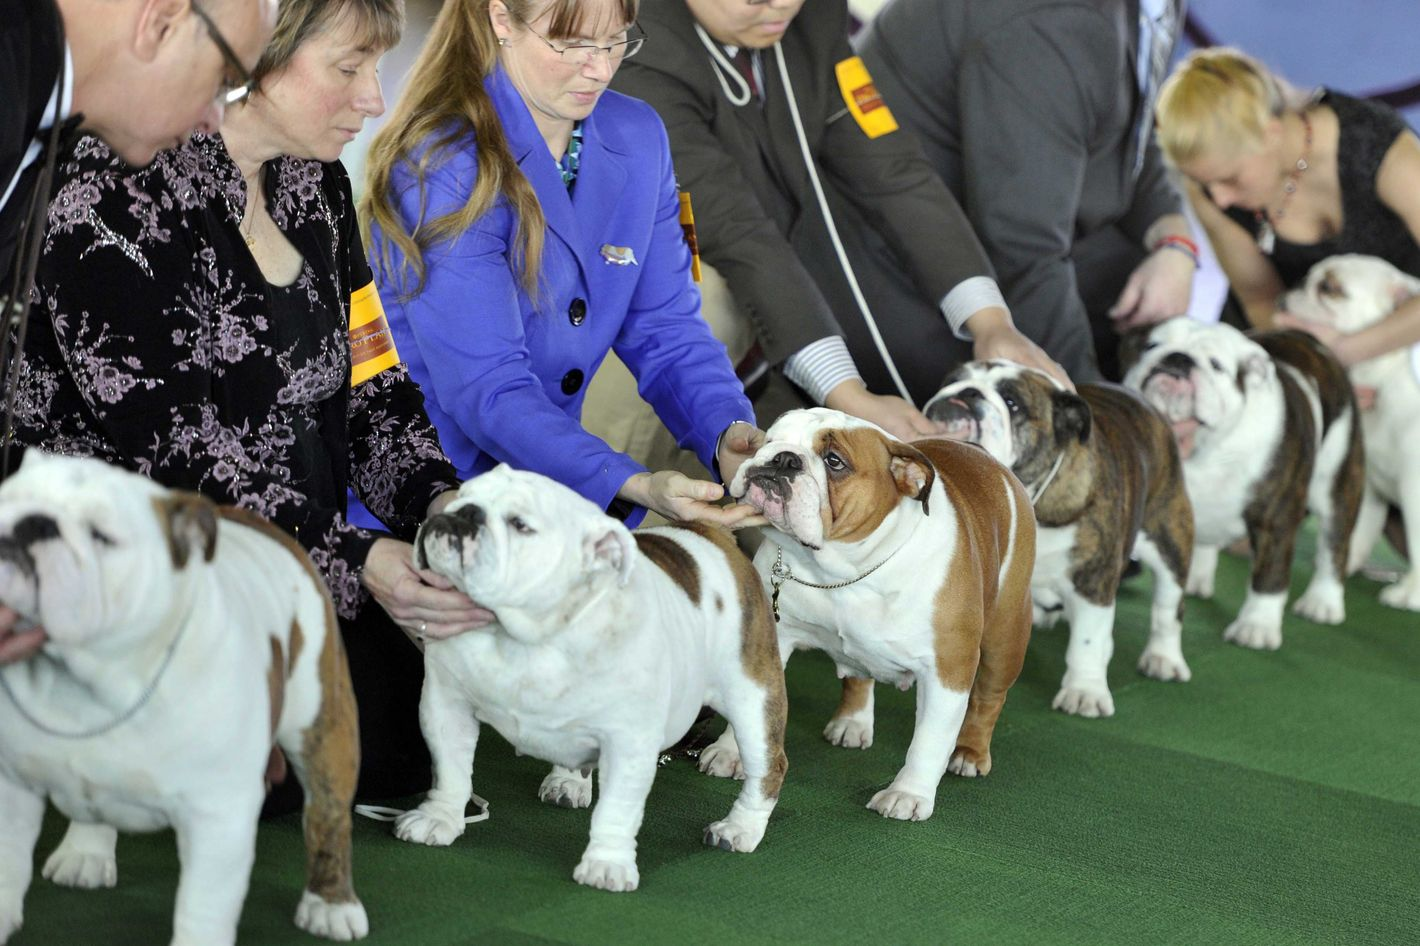 Bulldogs in the judging ring at Pier 92 and 94 in New York City  for the first day of competition  at the 138th Annual Westminster Kennel Club Dog Show February 10, 2014. The Westminster Kennel Club Dog Show is a two-day, all-breed benched  show that takes place at both Pier 92 and 94 and at Madison Square Garden in New York City .     AFP PHOTO / Timothy Clary        (Photo credit should read TIMOTHY CLARY/AFP/Getty Images)